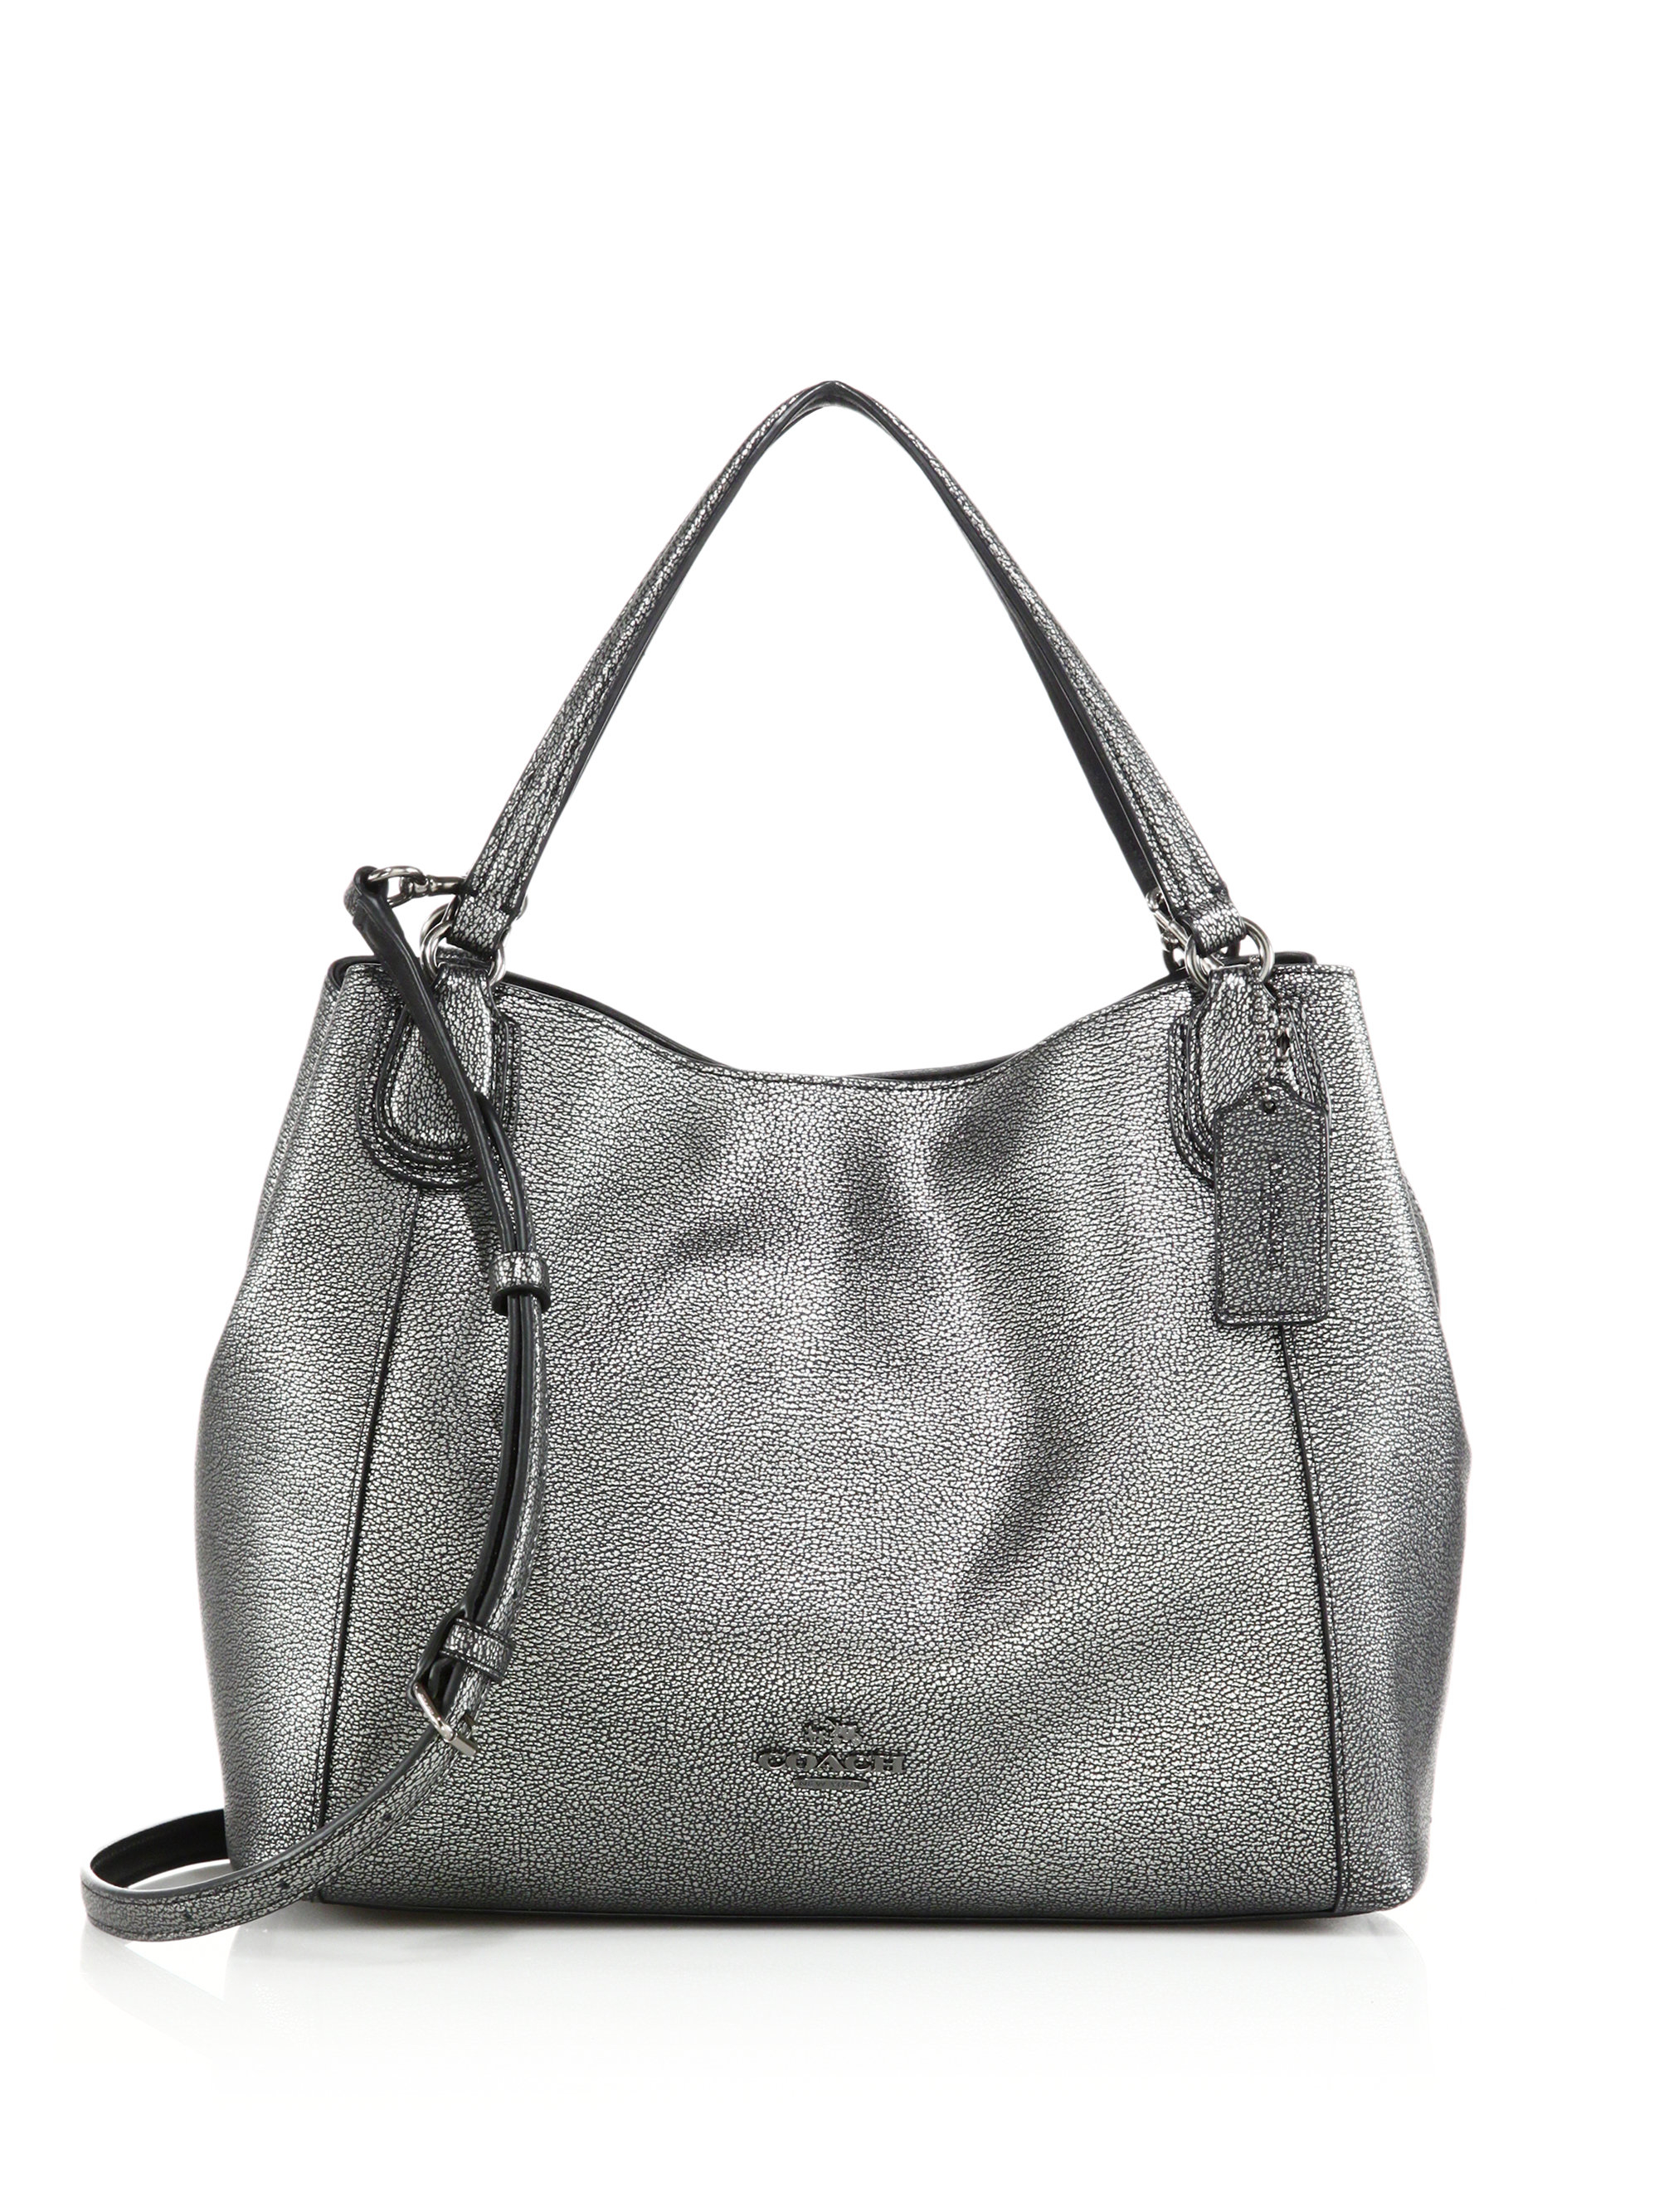 b62797c33428 Lyst - COACH Edie Metallic Pebbled Leather Shoulder Bag in Metallic